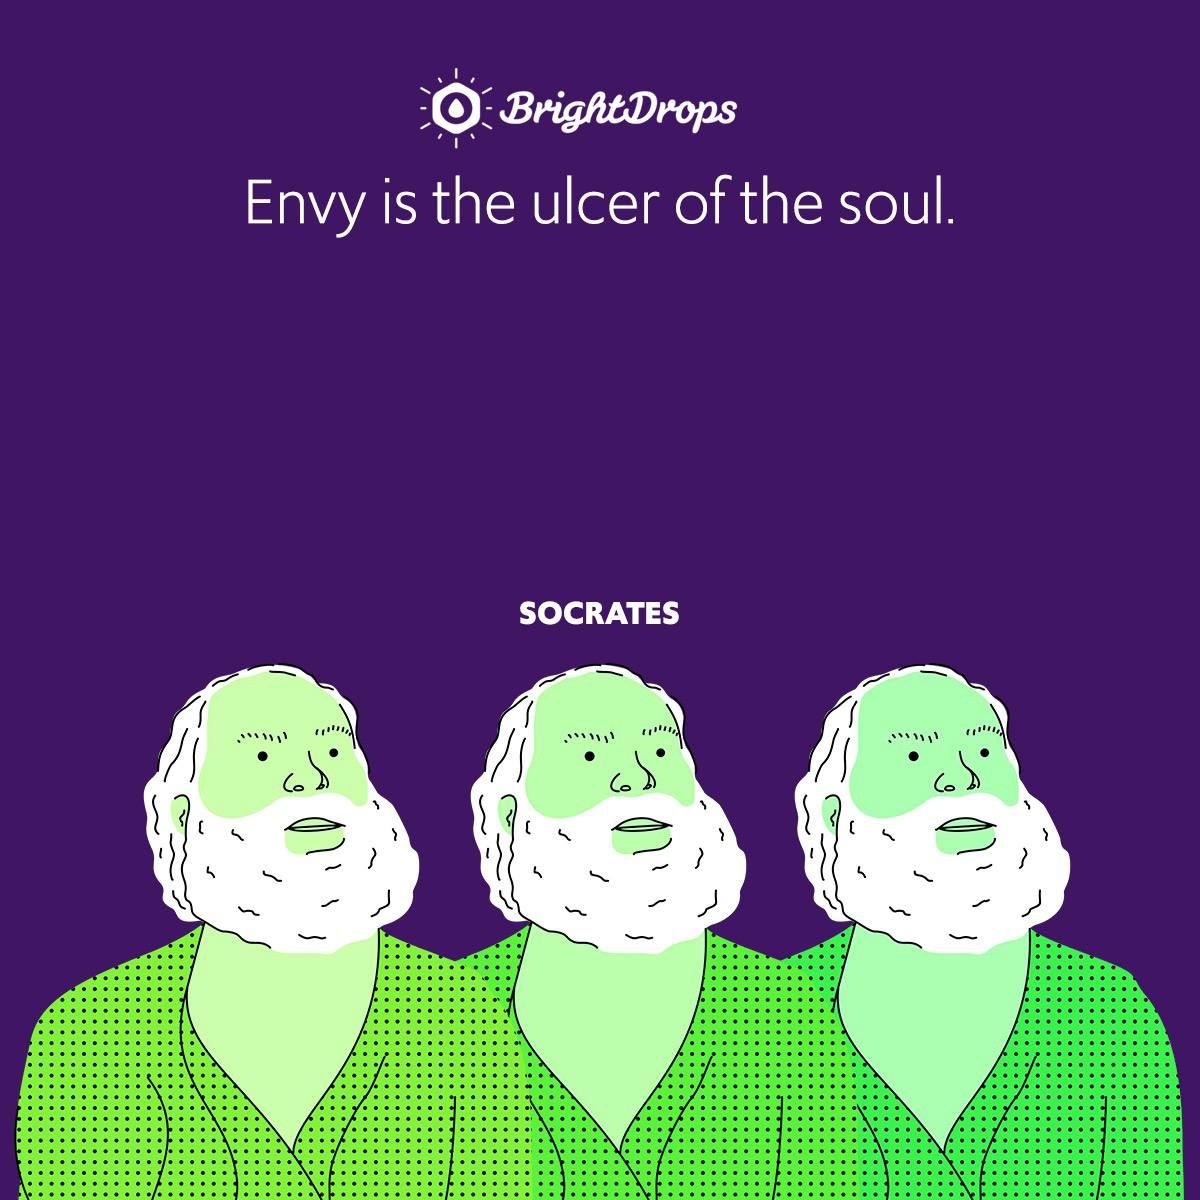 Envy is the ulcer of the soul.